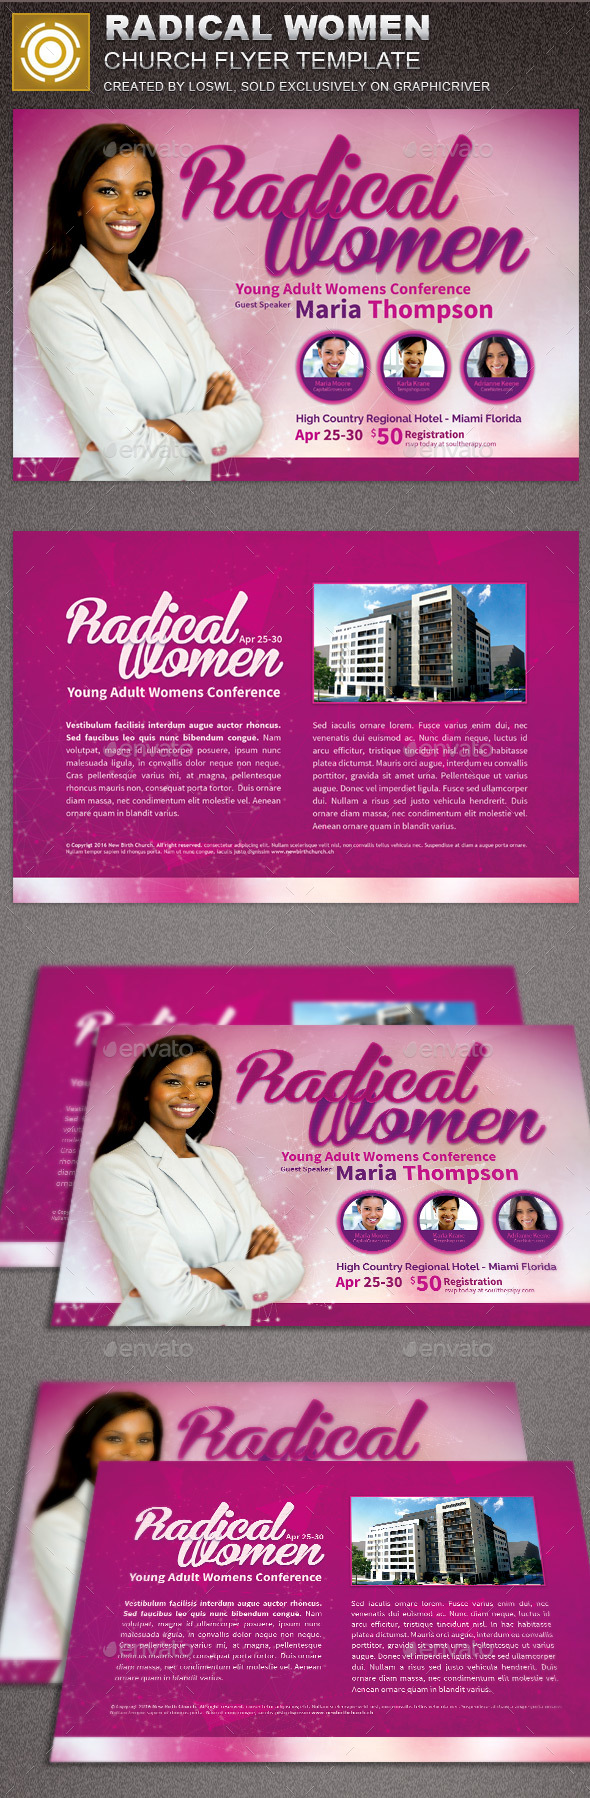 Radical Women Church Flyer Template - Church Flyers